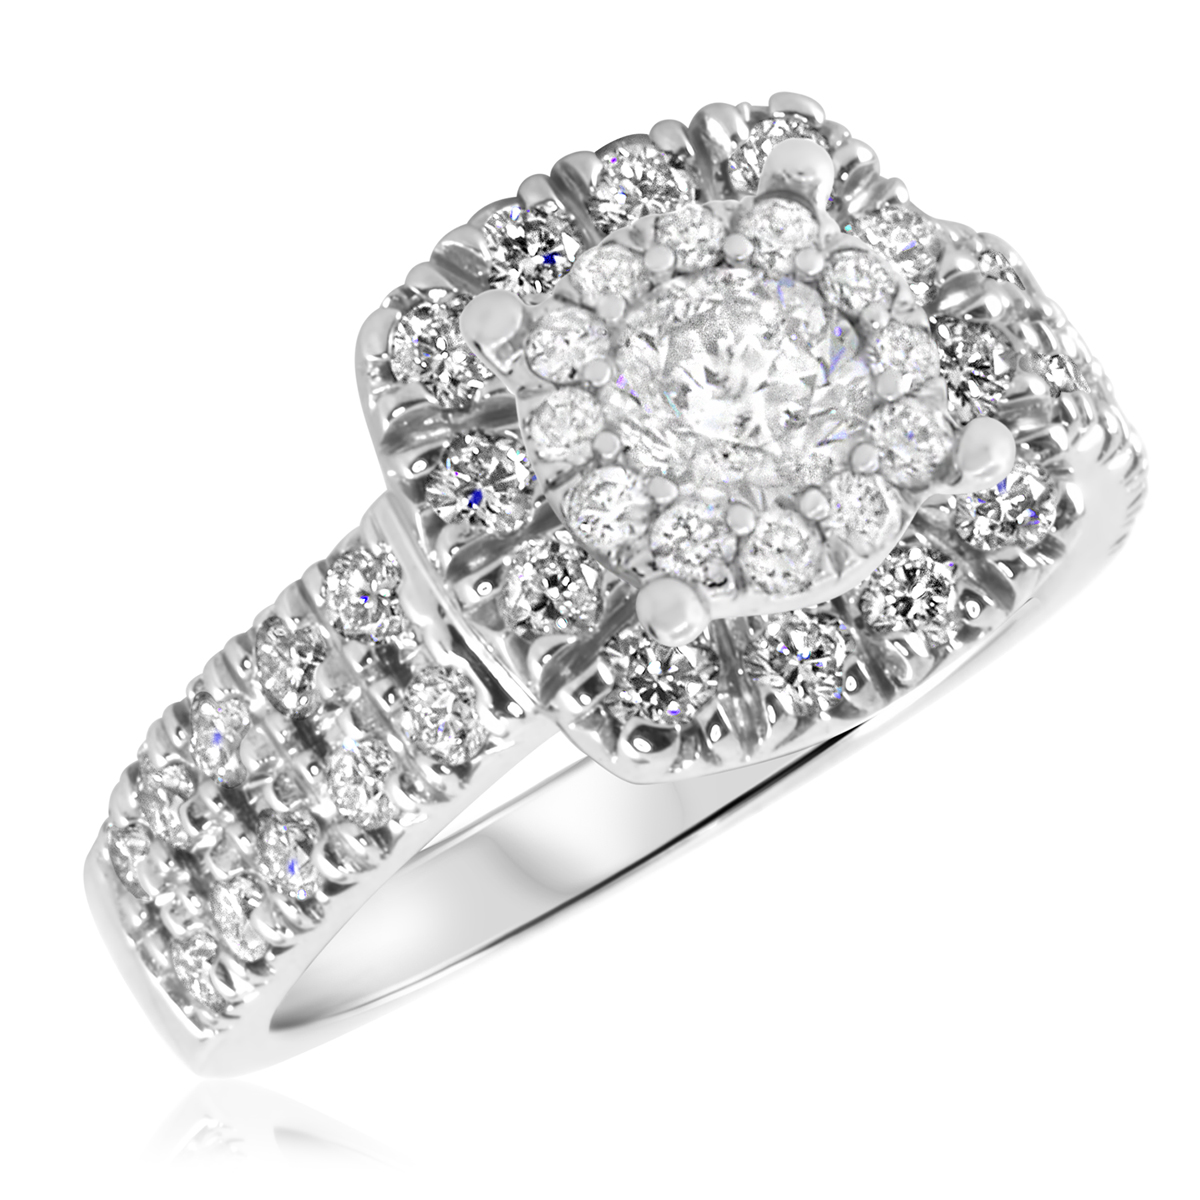 1 1/2 CT. T.W. Diamond Ladies Engagement Ring 14K White Gold- Size 8